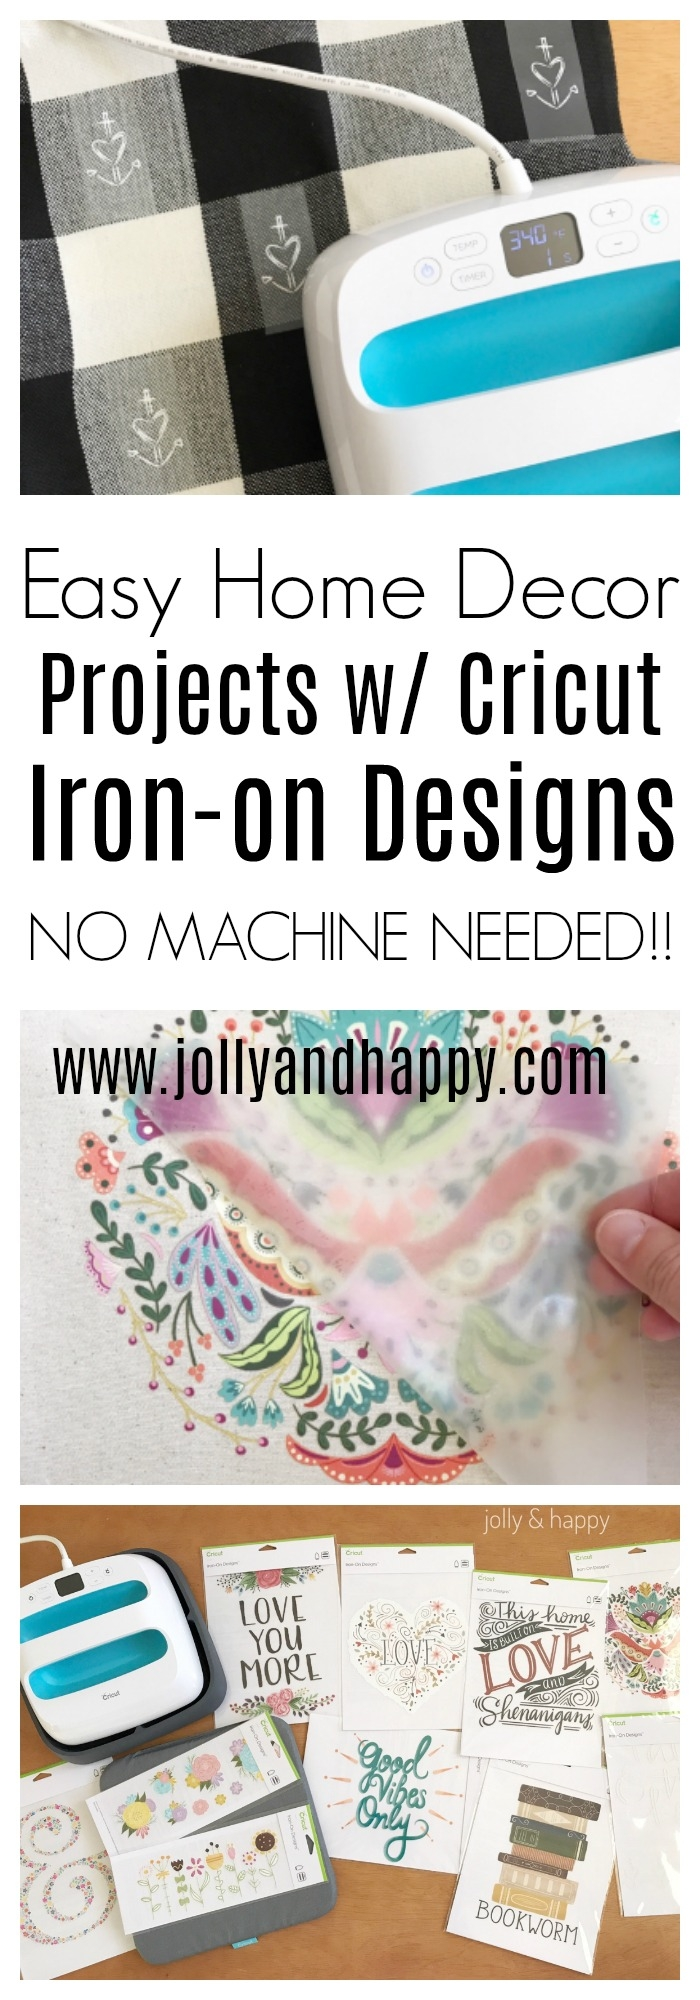 I Love How Cricut Iron On Designs Made These Projects Easy And Fast!! Which  Design Are You Most Excited About? And What Are You Planning To Apply It  To??